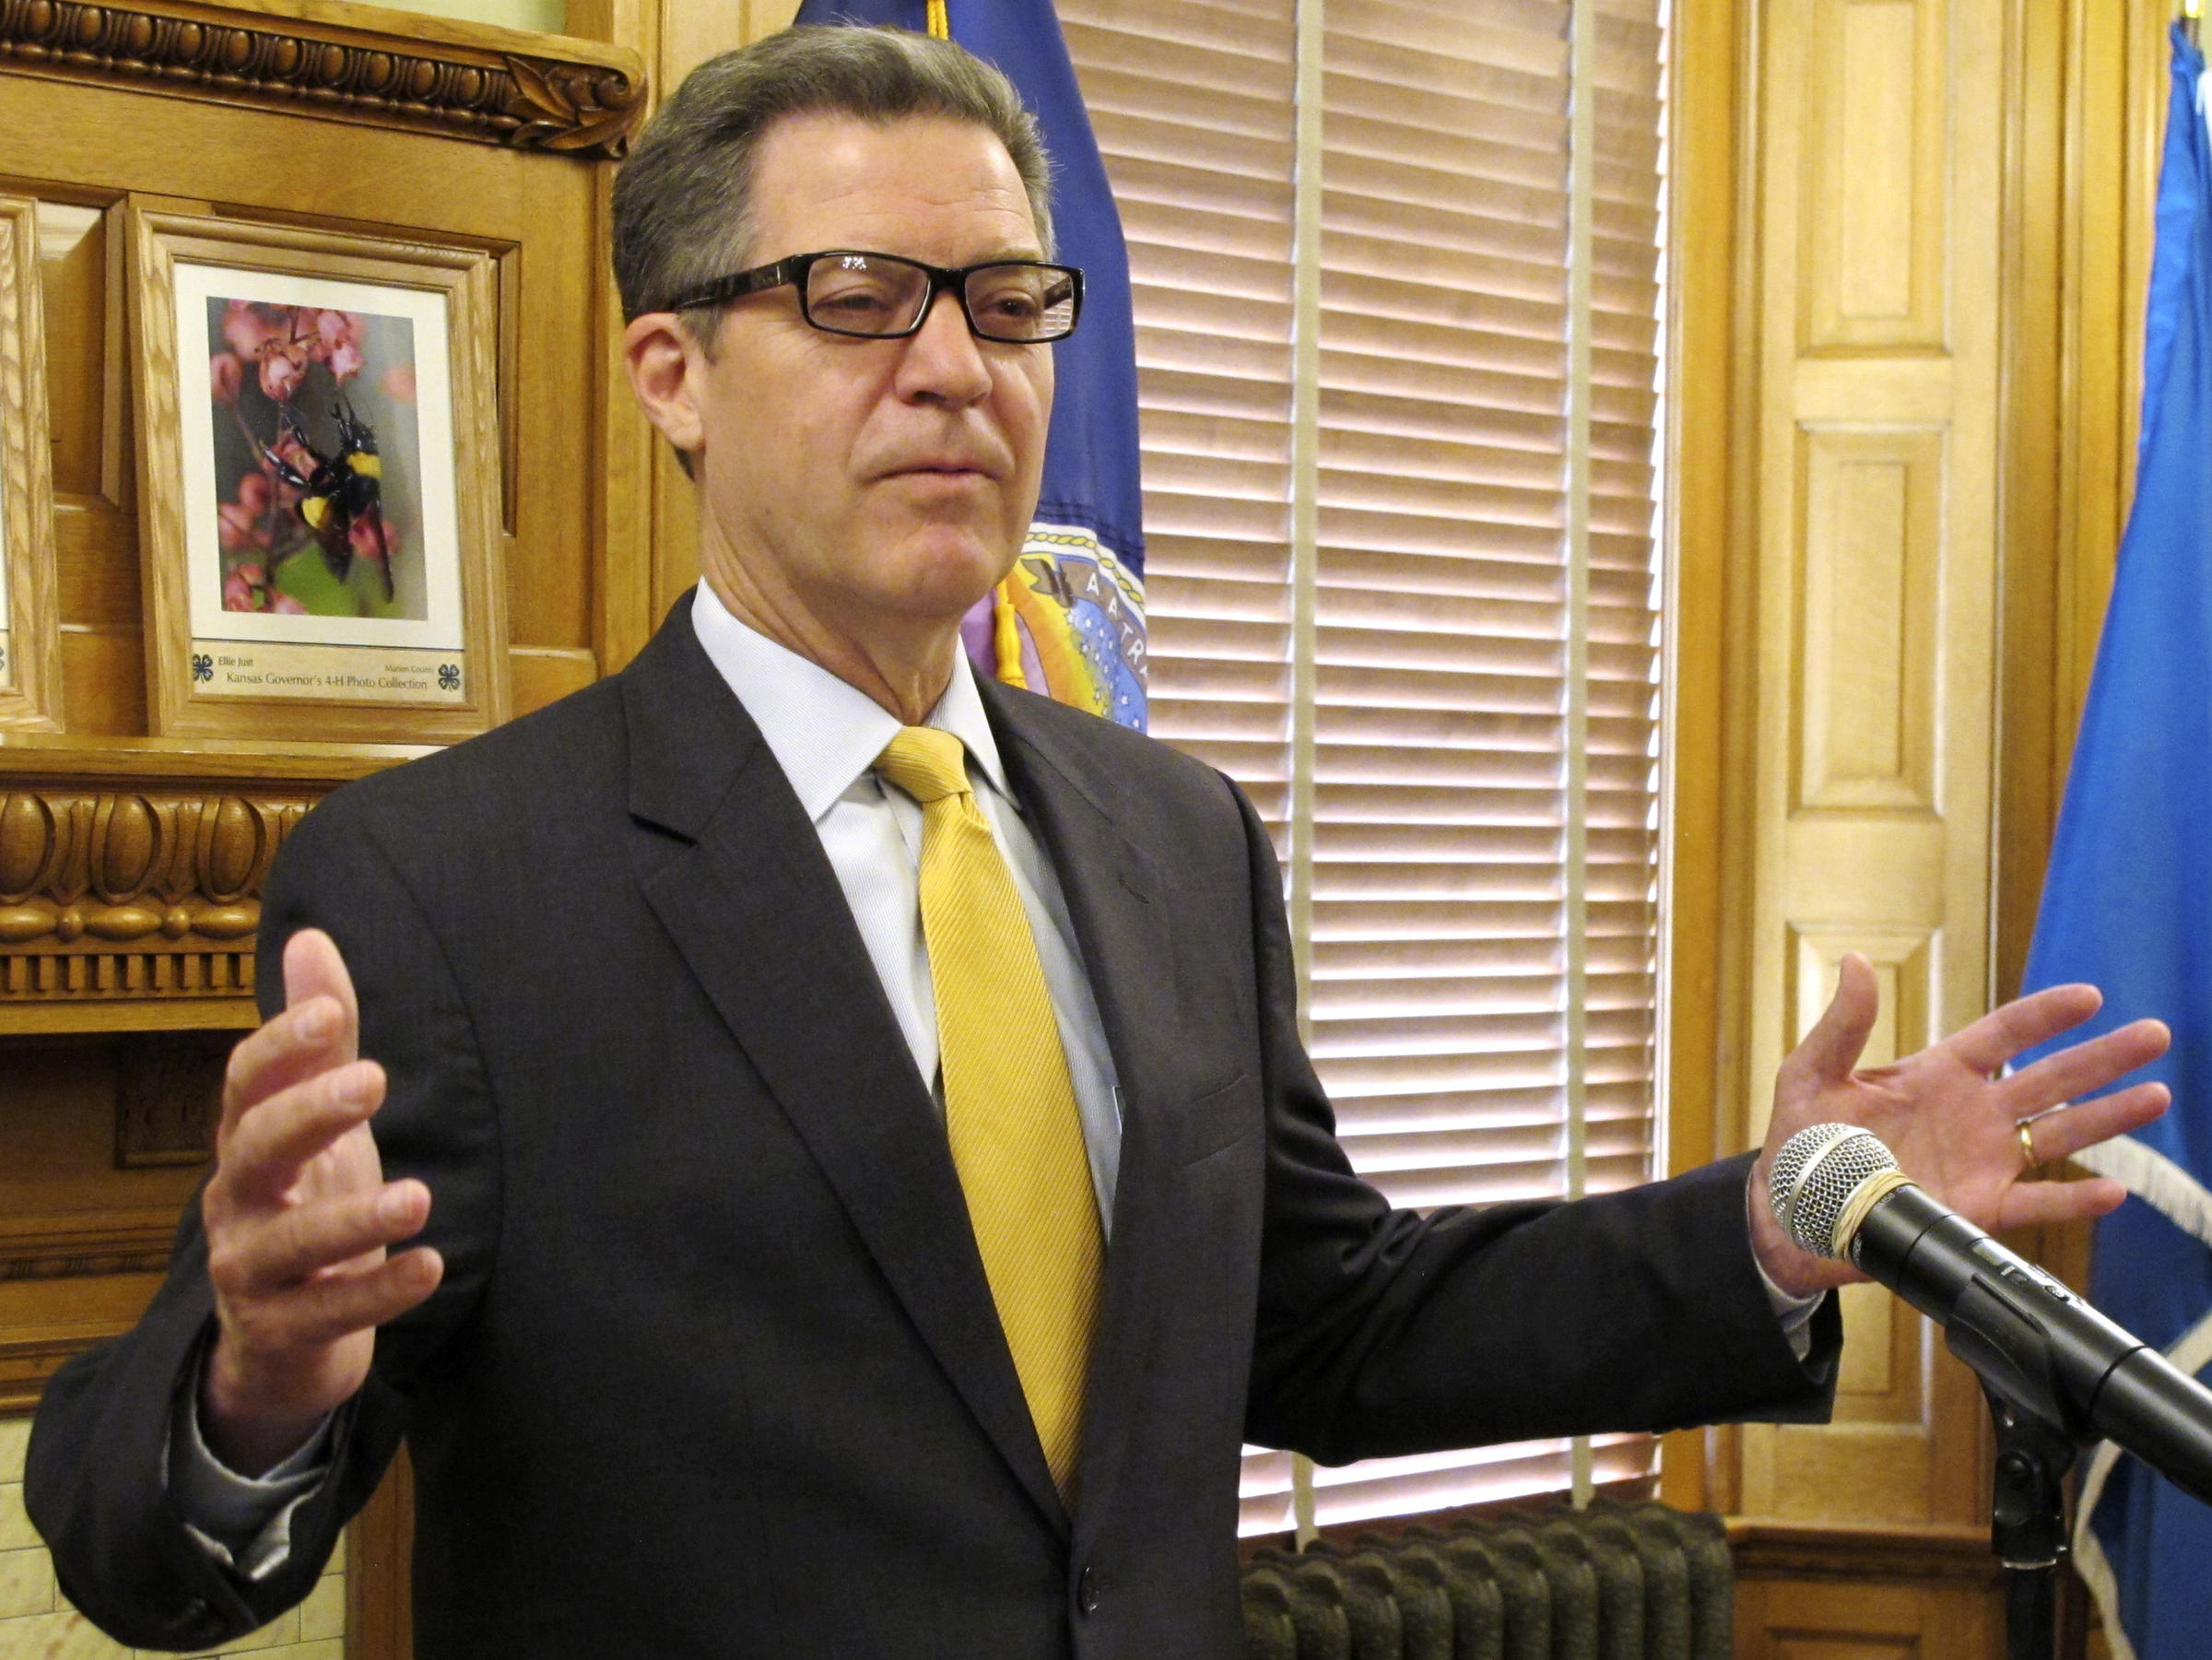 Gov. Brownback appointed to religious freedom ambassadorship